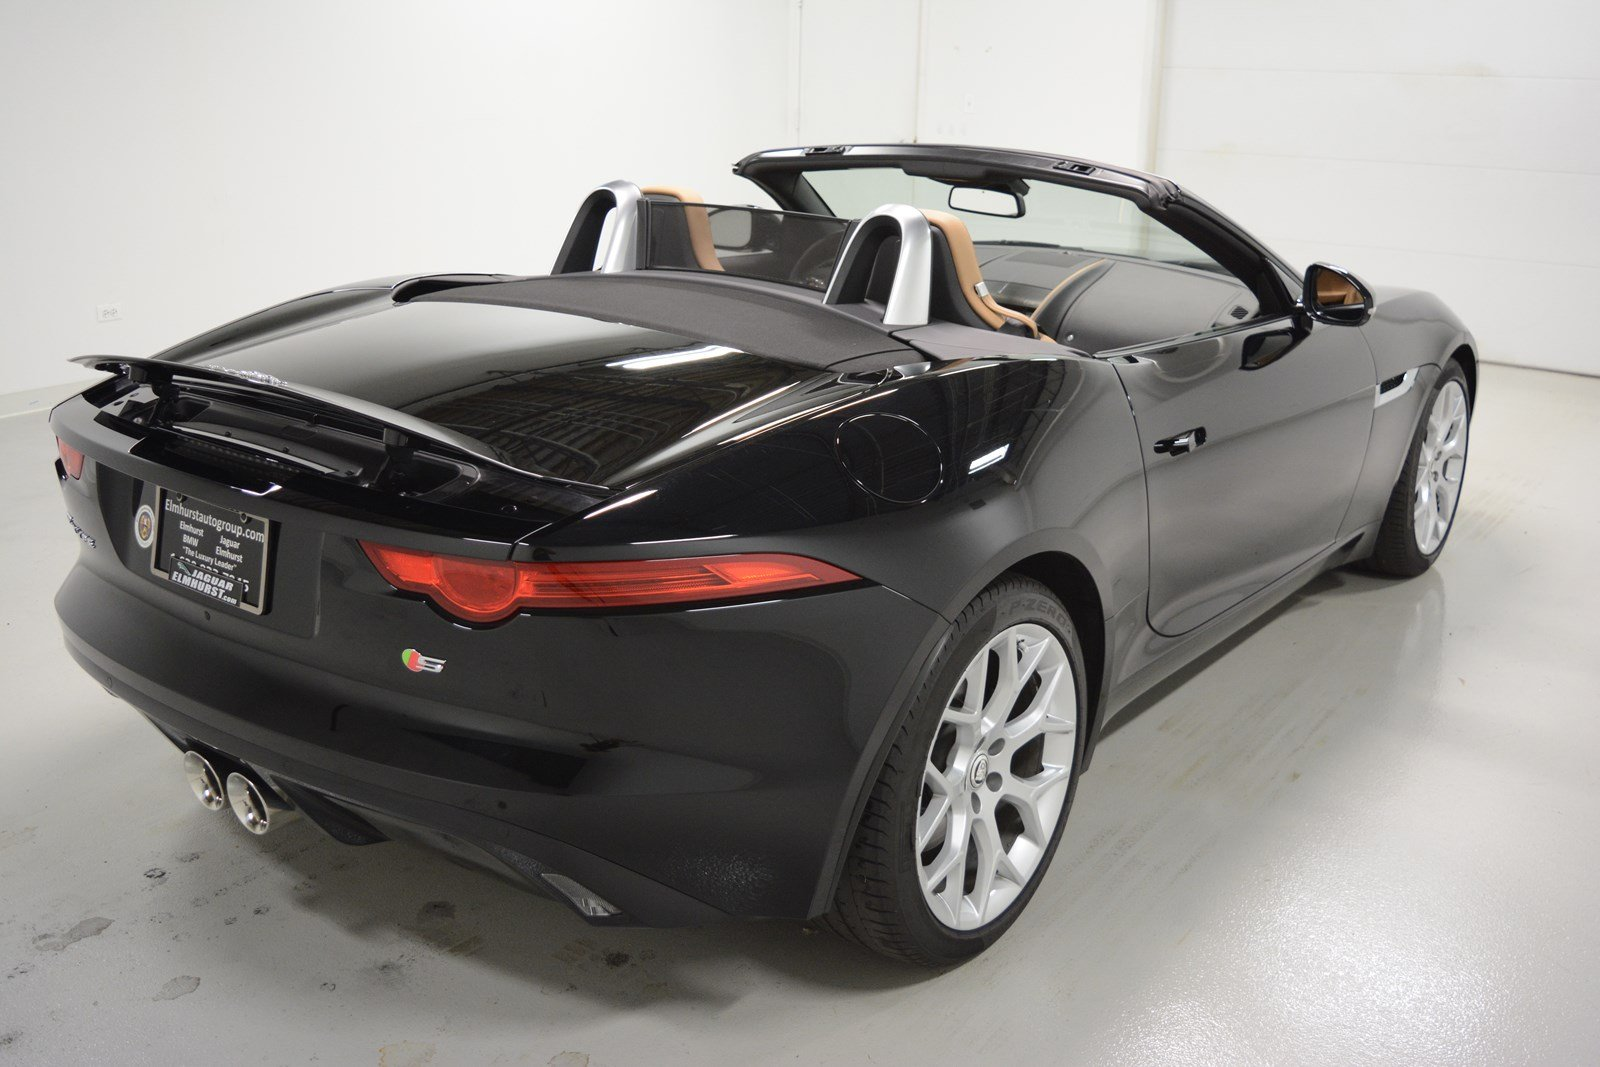 pre owned 2014 jaguar f type v6 s convertible in elmhurst j2409p jaguar elmhurst. Black Bedroom Furniture Sets. Home Design Ideas